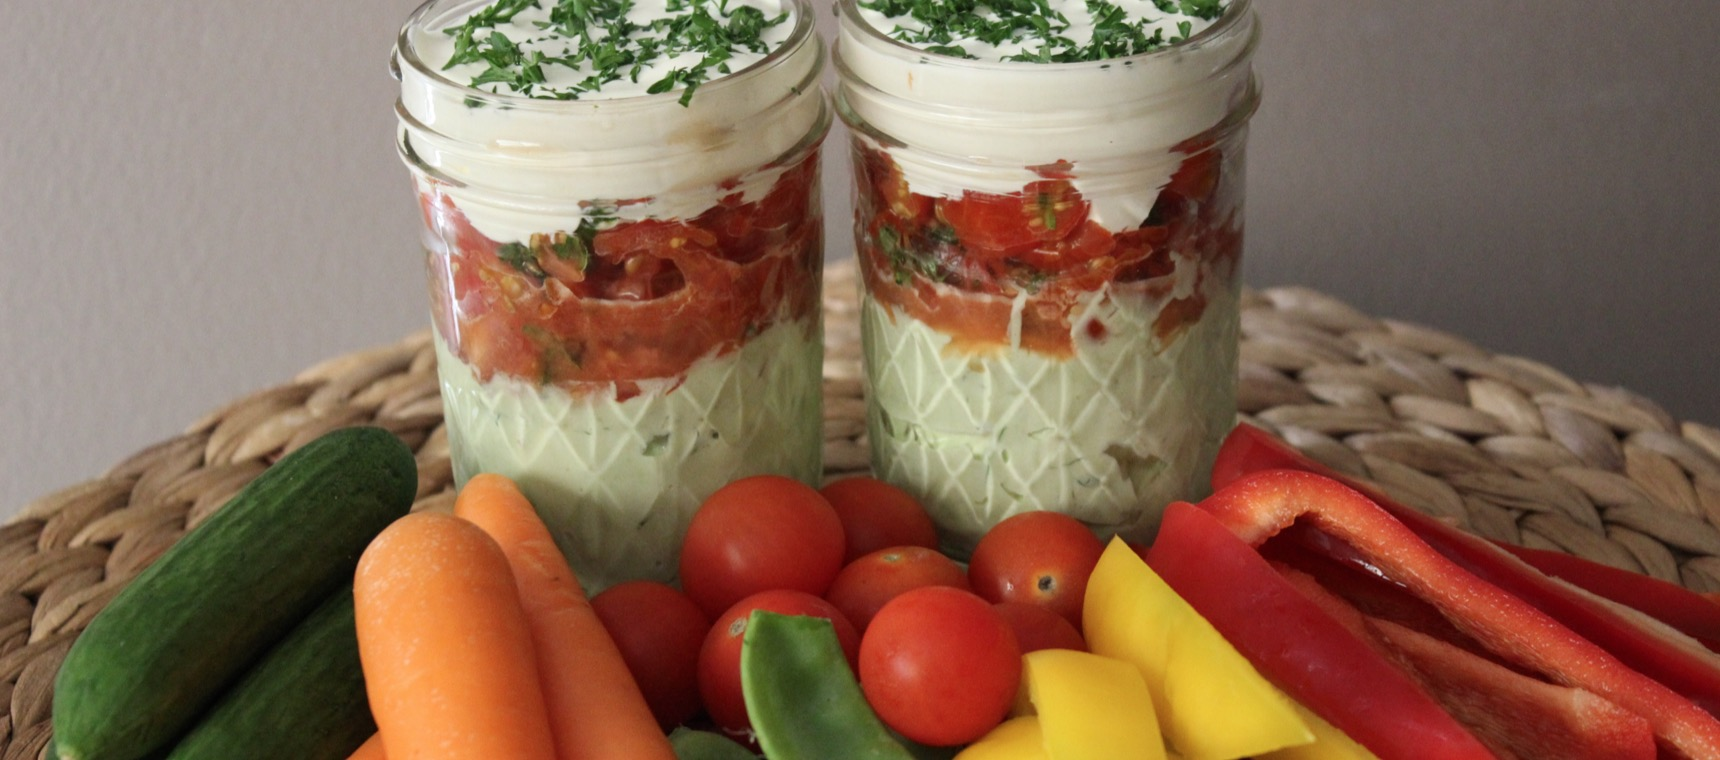 Festive Layered Dip with Veggies